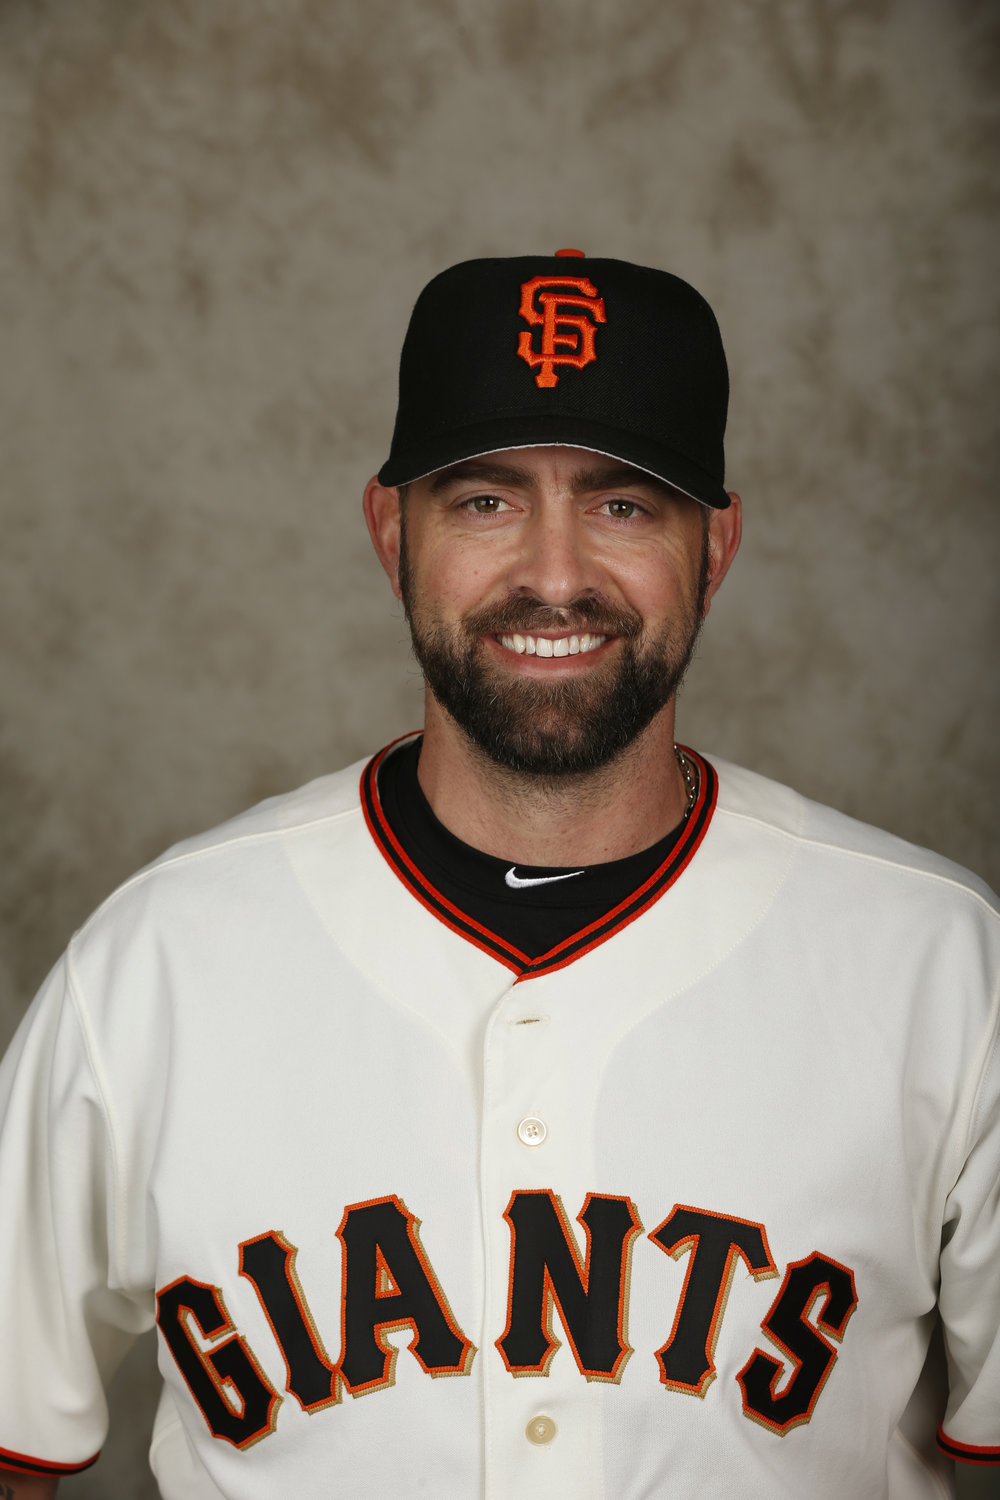 Jeremy Affeldt   Jeremy Affeldt is a three-time World Series Champion. Jeremy was a left-handed pitcher in the Majors for fourteen seasons and played with the Kansas City Royals, Colorado Rockies, Cincinnati Reds and San Francisco Giants. In 2013, Affeldt released a book entitled To Stir a Movement: Life, Justice, and Major League Baseball.